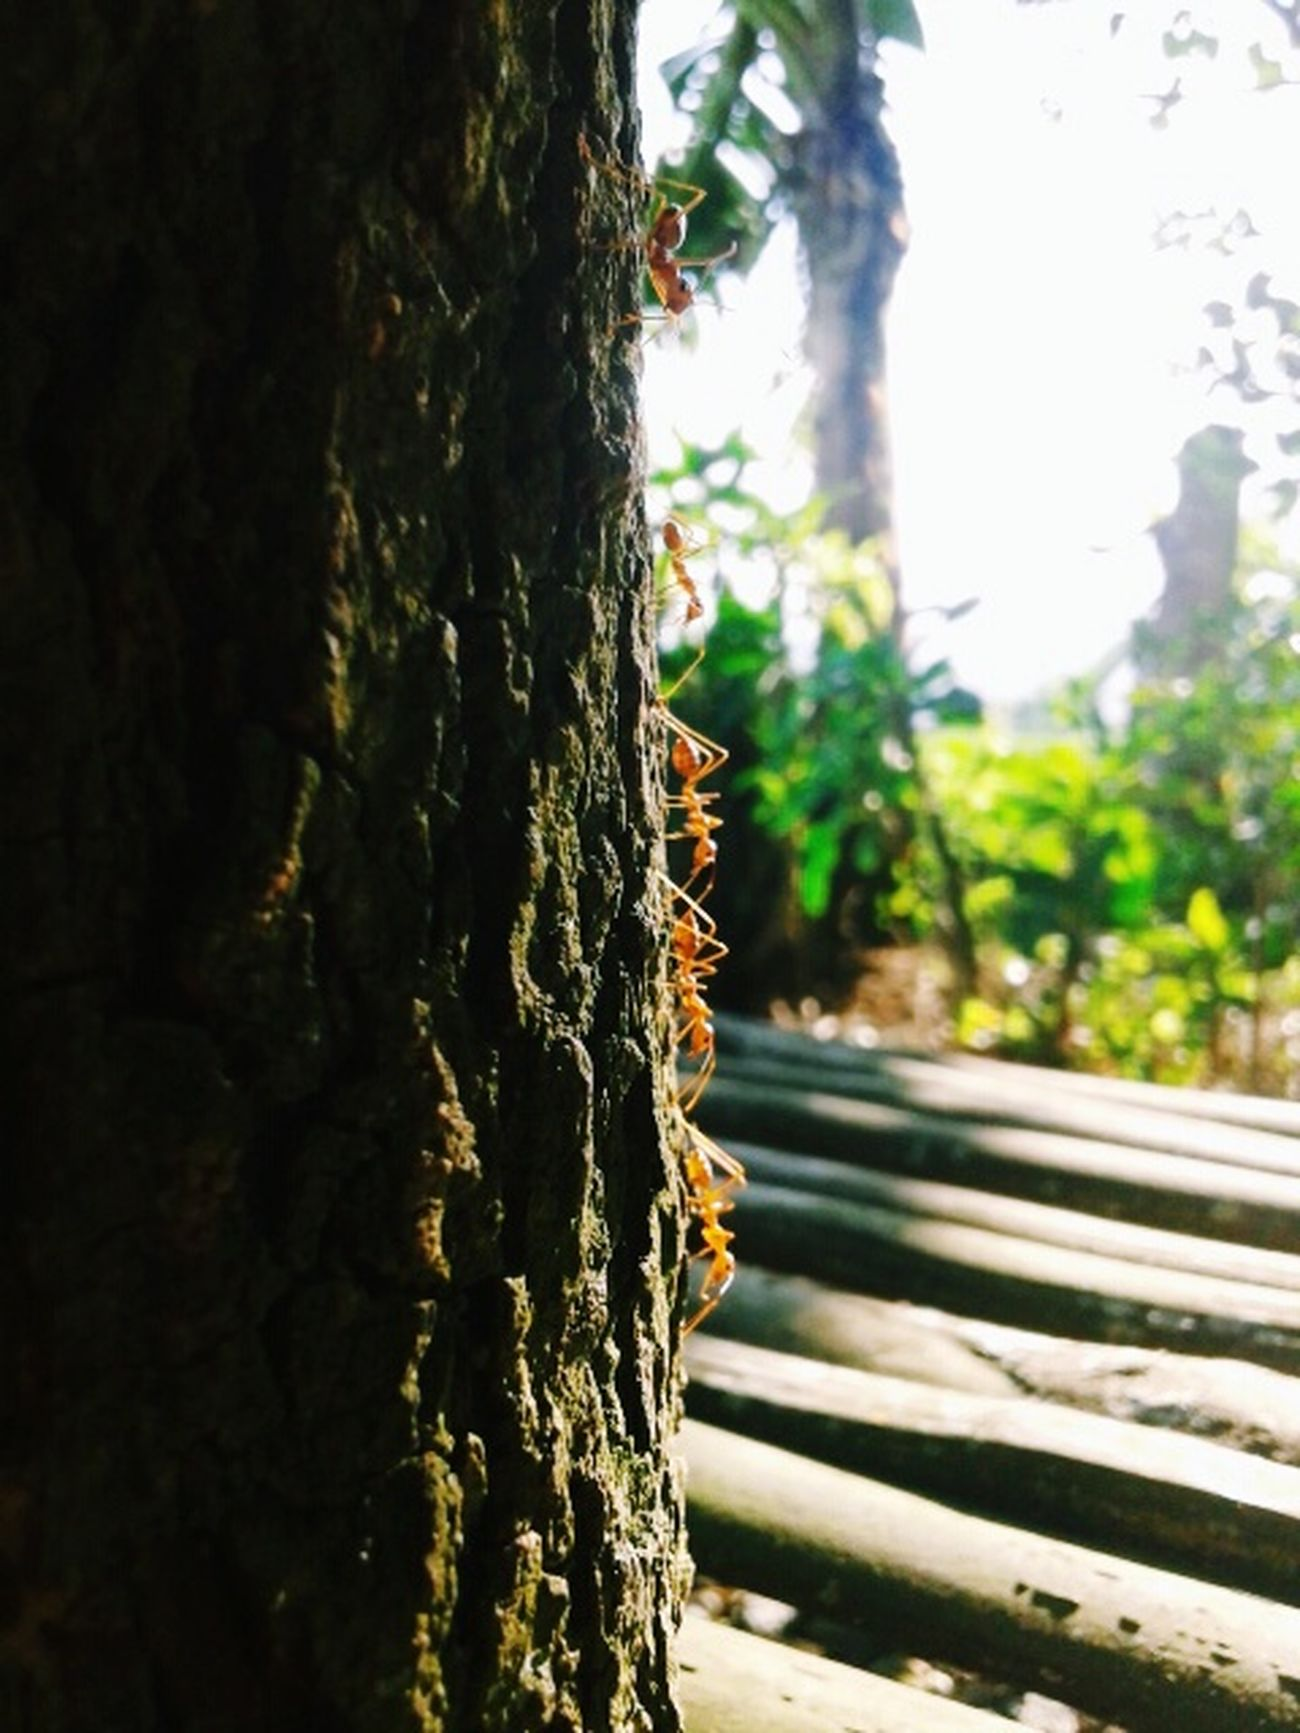 ants are the most hardworking insects Antsmarching Antsveiw Check This Out Eyemnaturelover